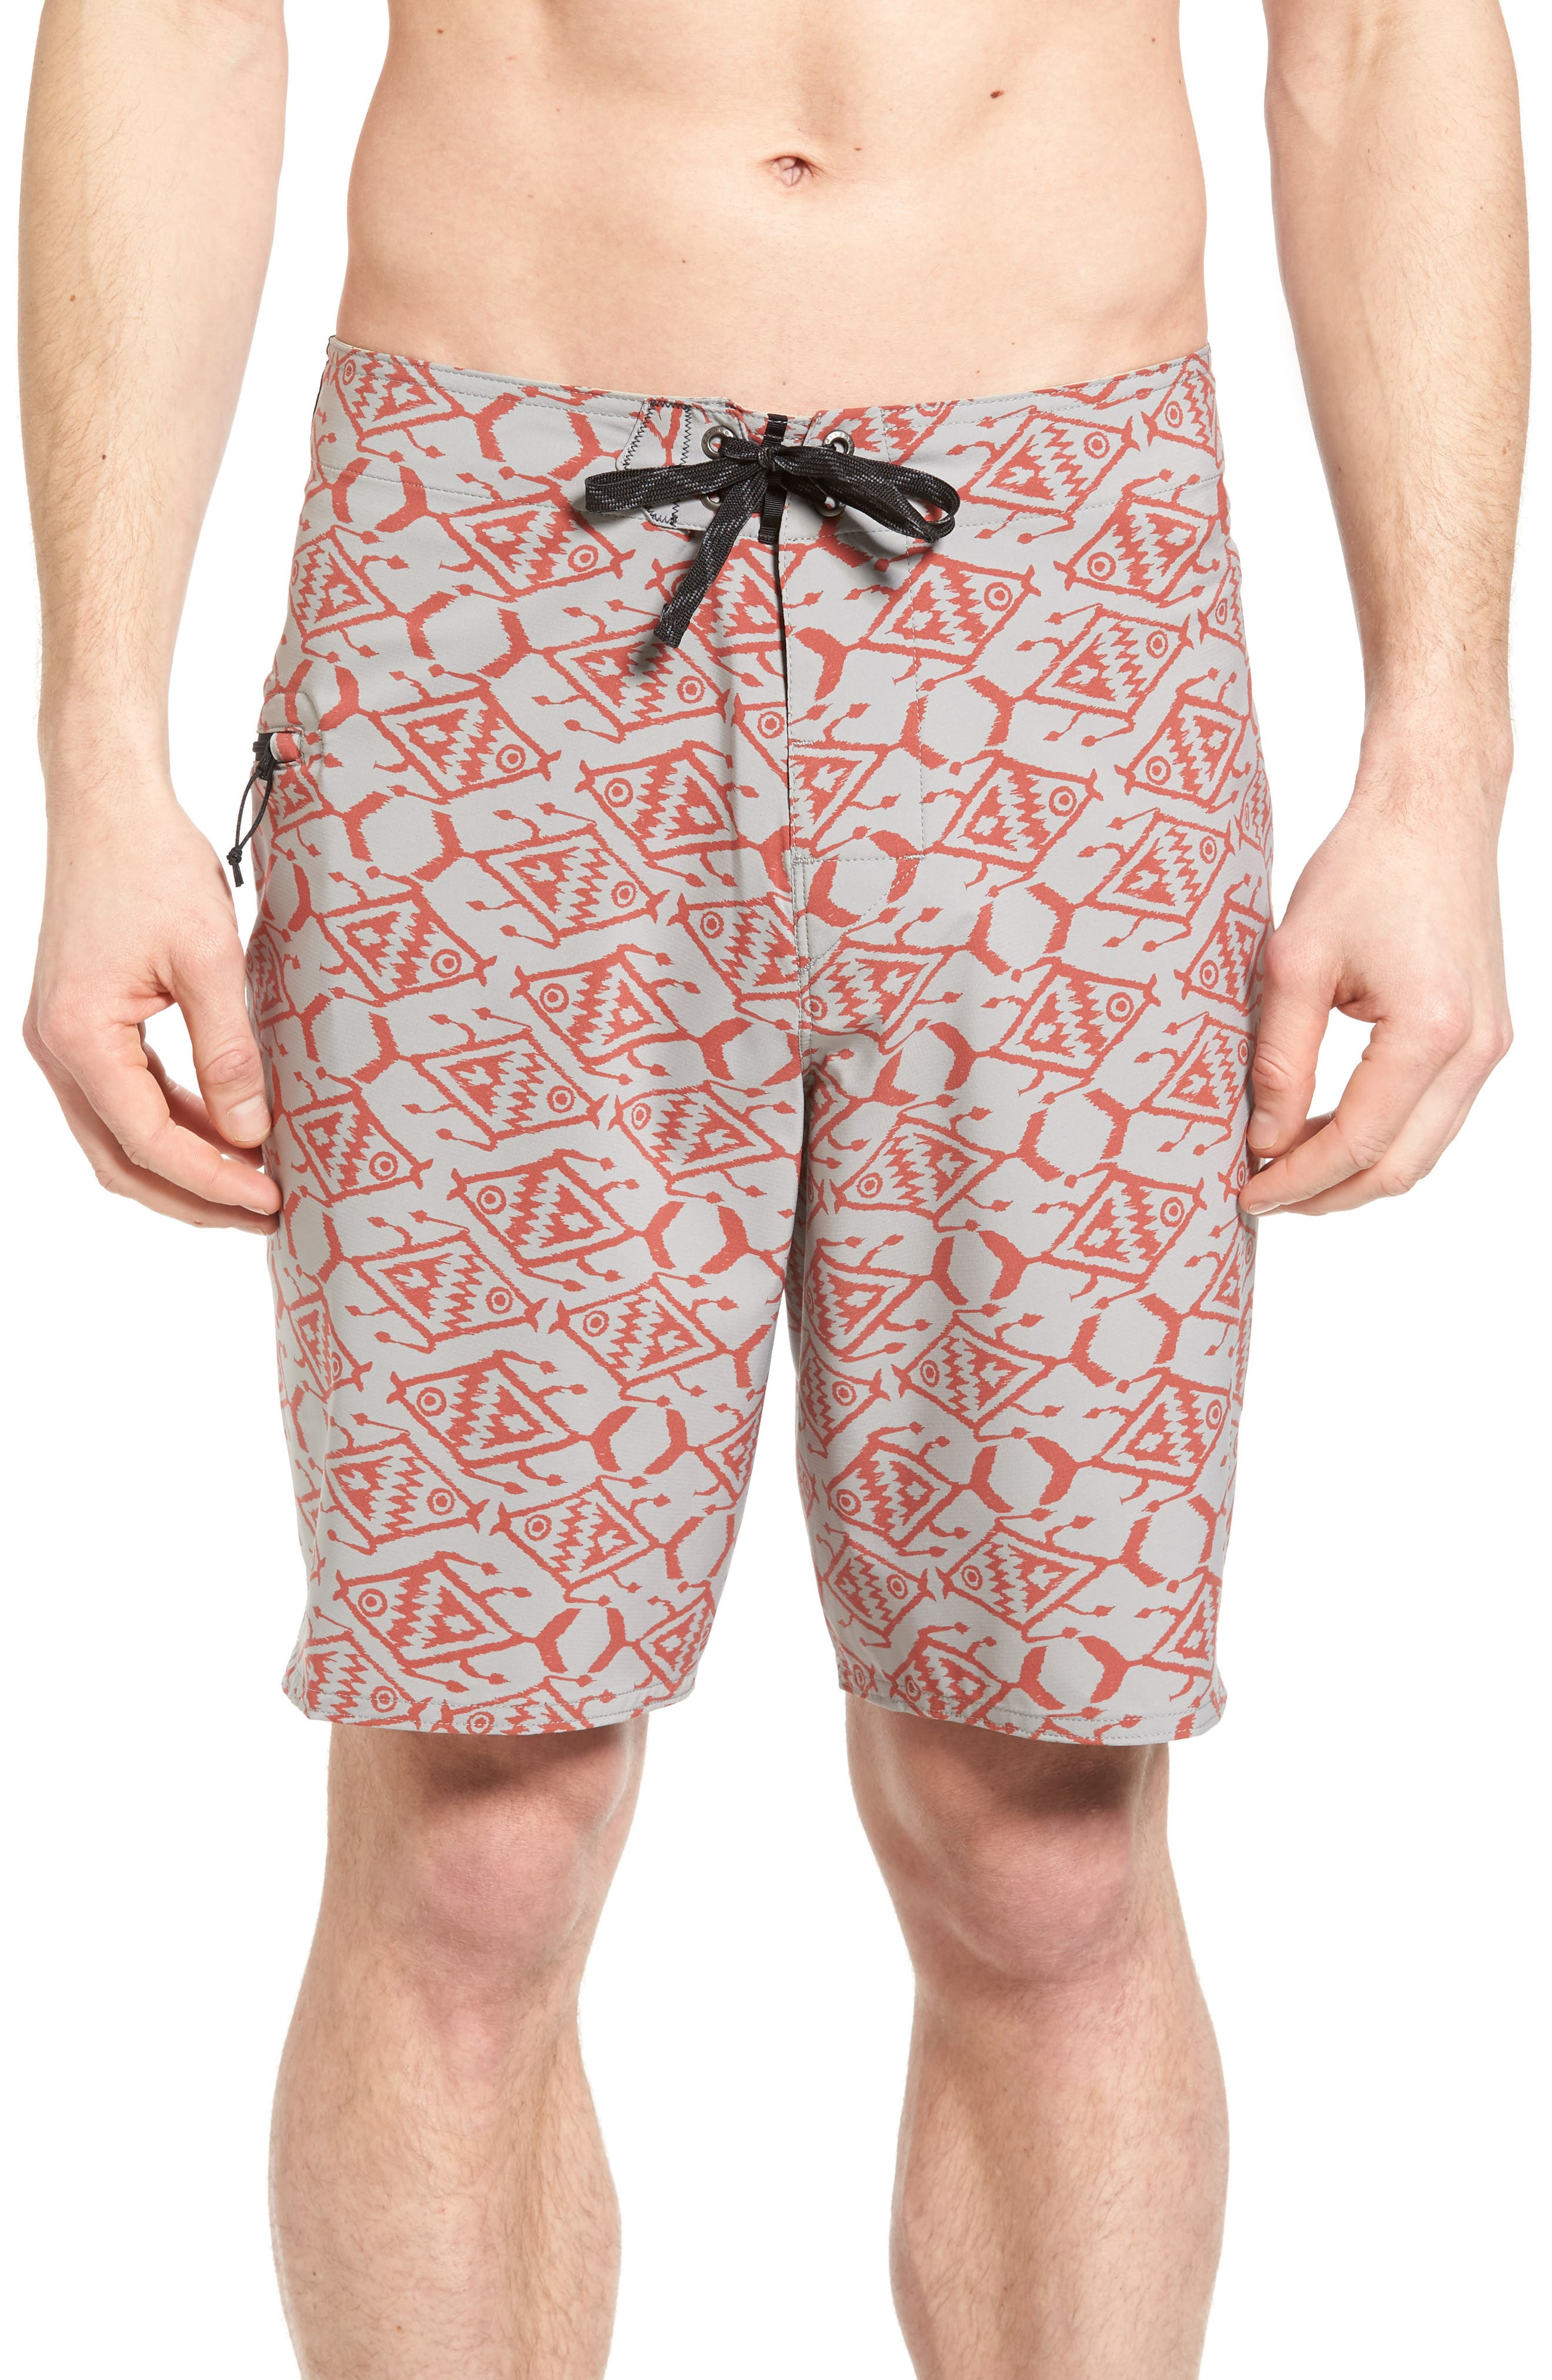 Stretch Planing Board Shorts,                         Main,                         color, Spiced Coral